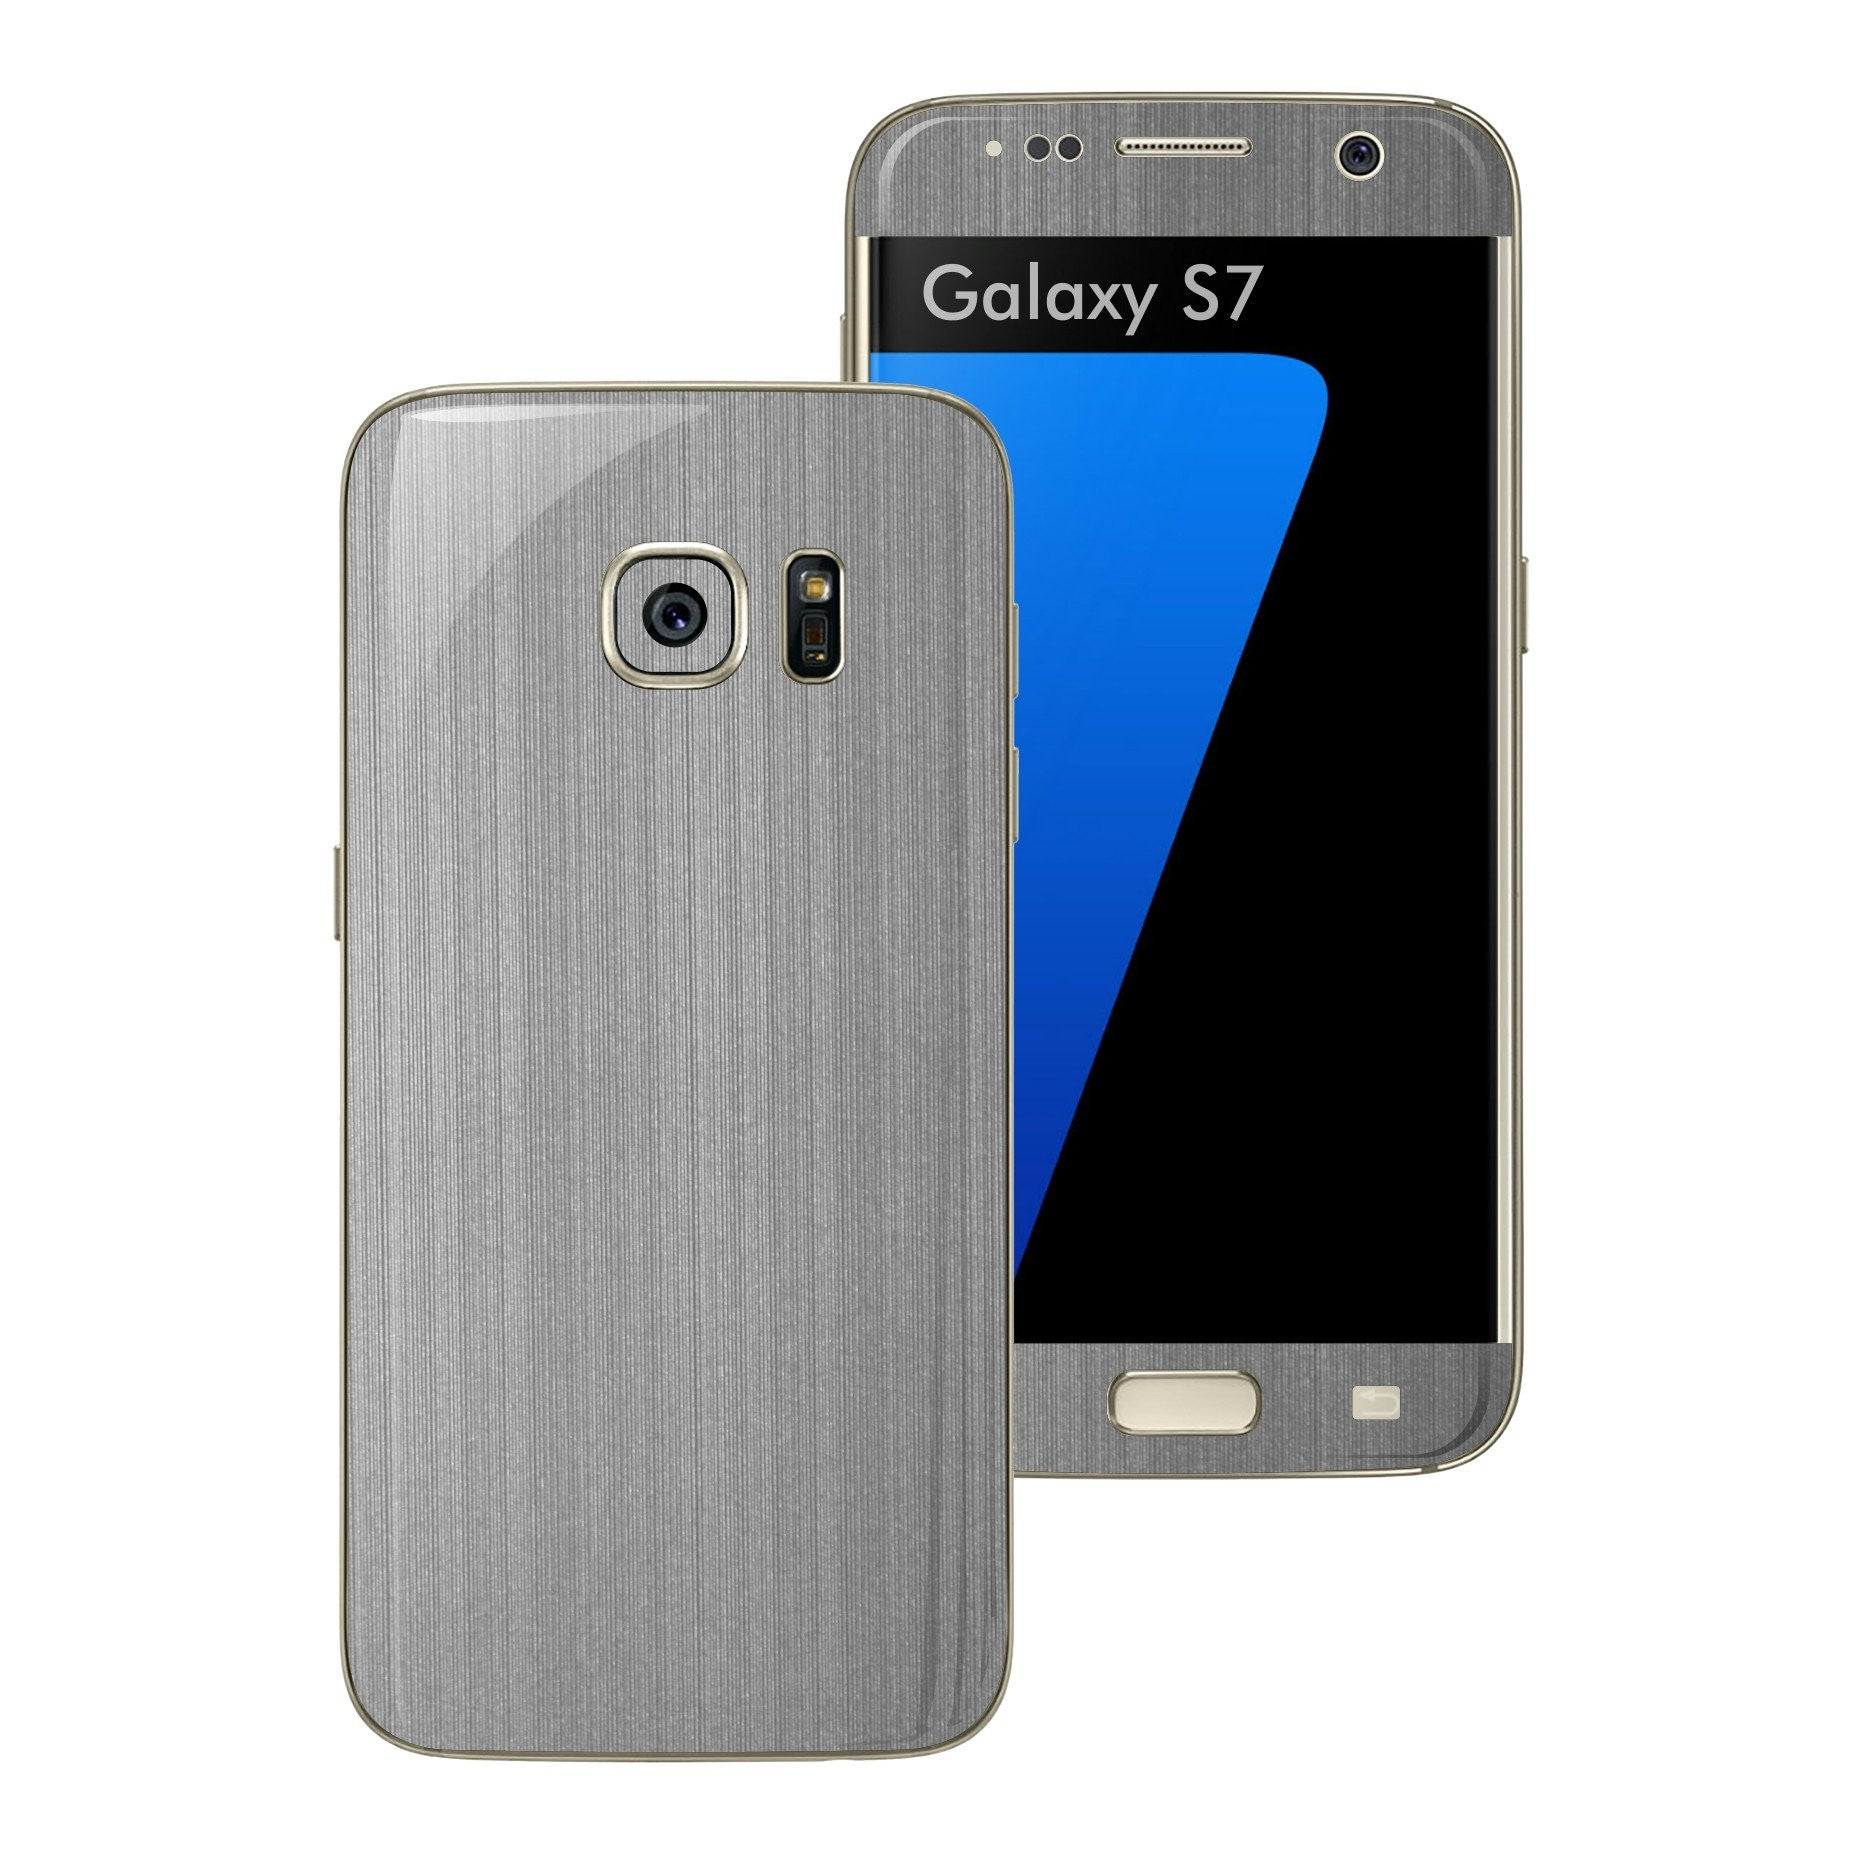 Samsung Galaxy S7 Brushed Steel Metallic Skin Wrap Decal Protector Cover Sticker by EasySkinz